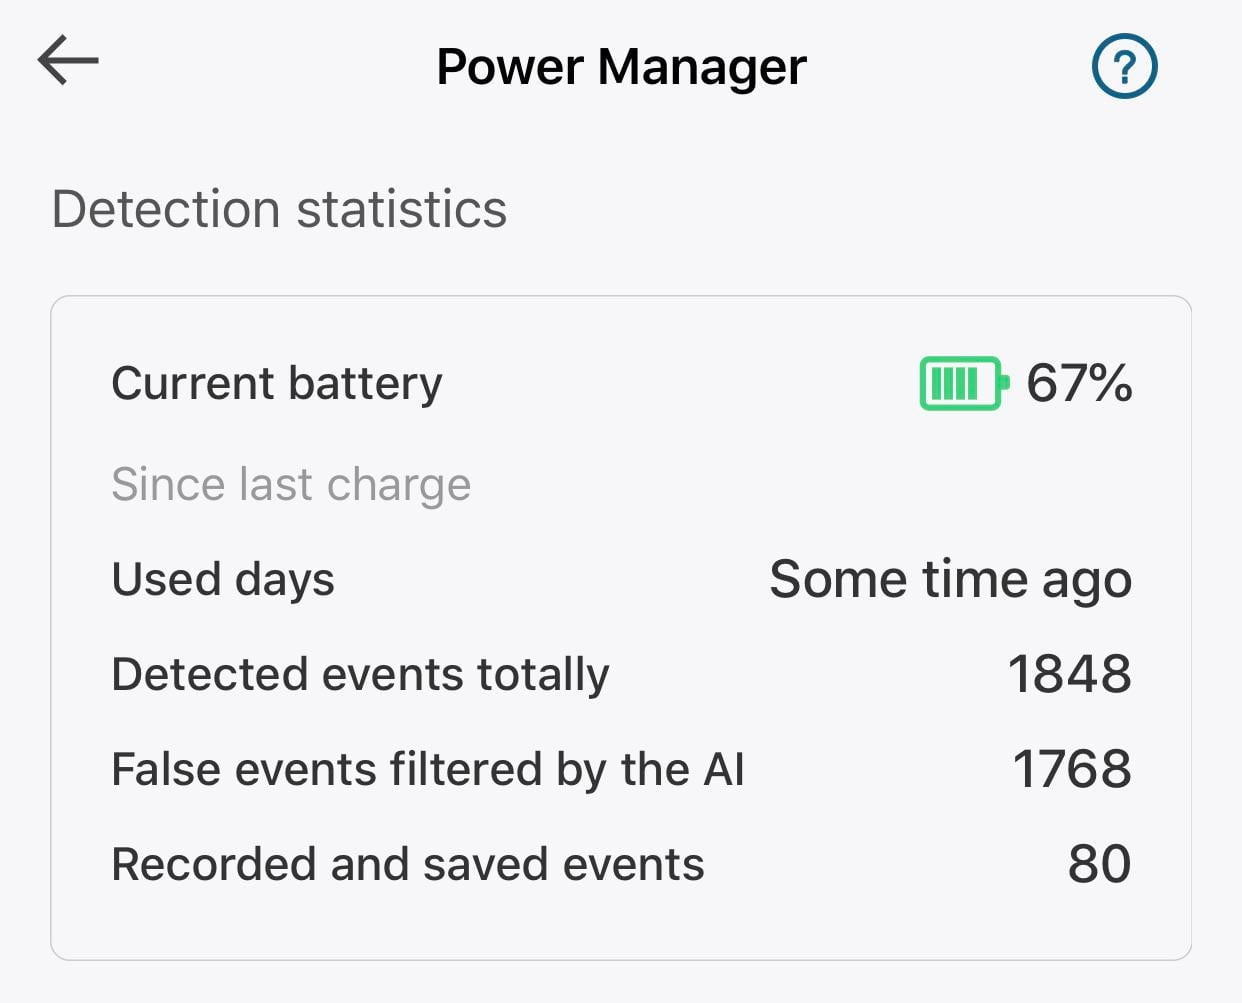 The secure video kills my battery !!! That in 3 days!